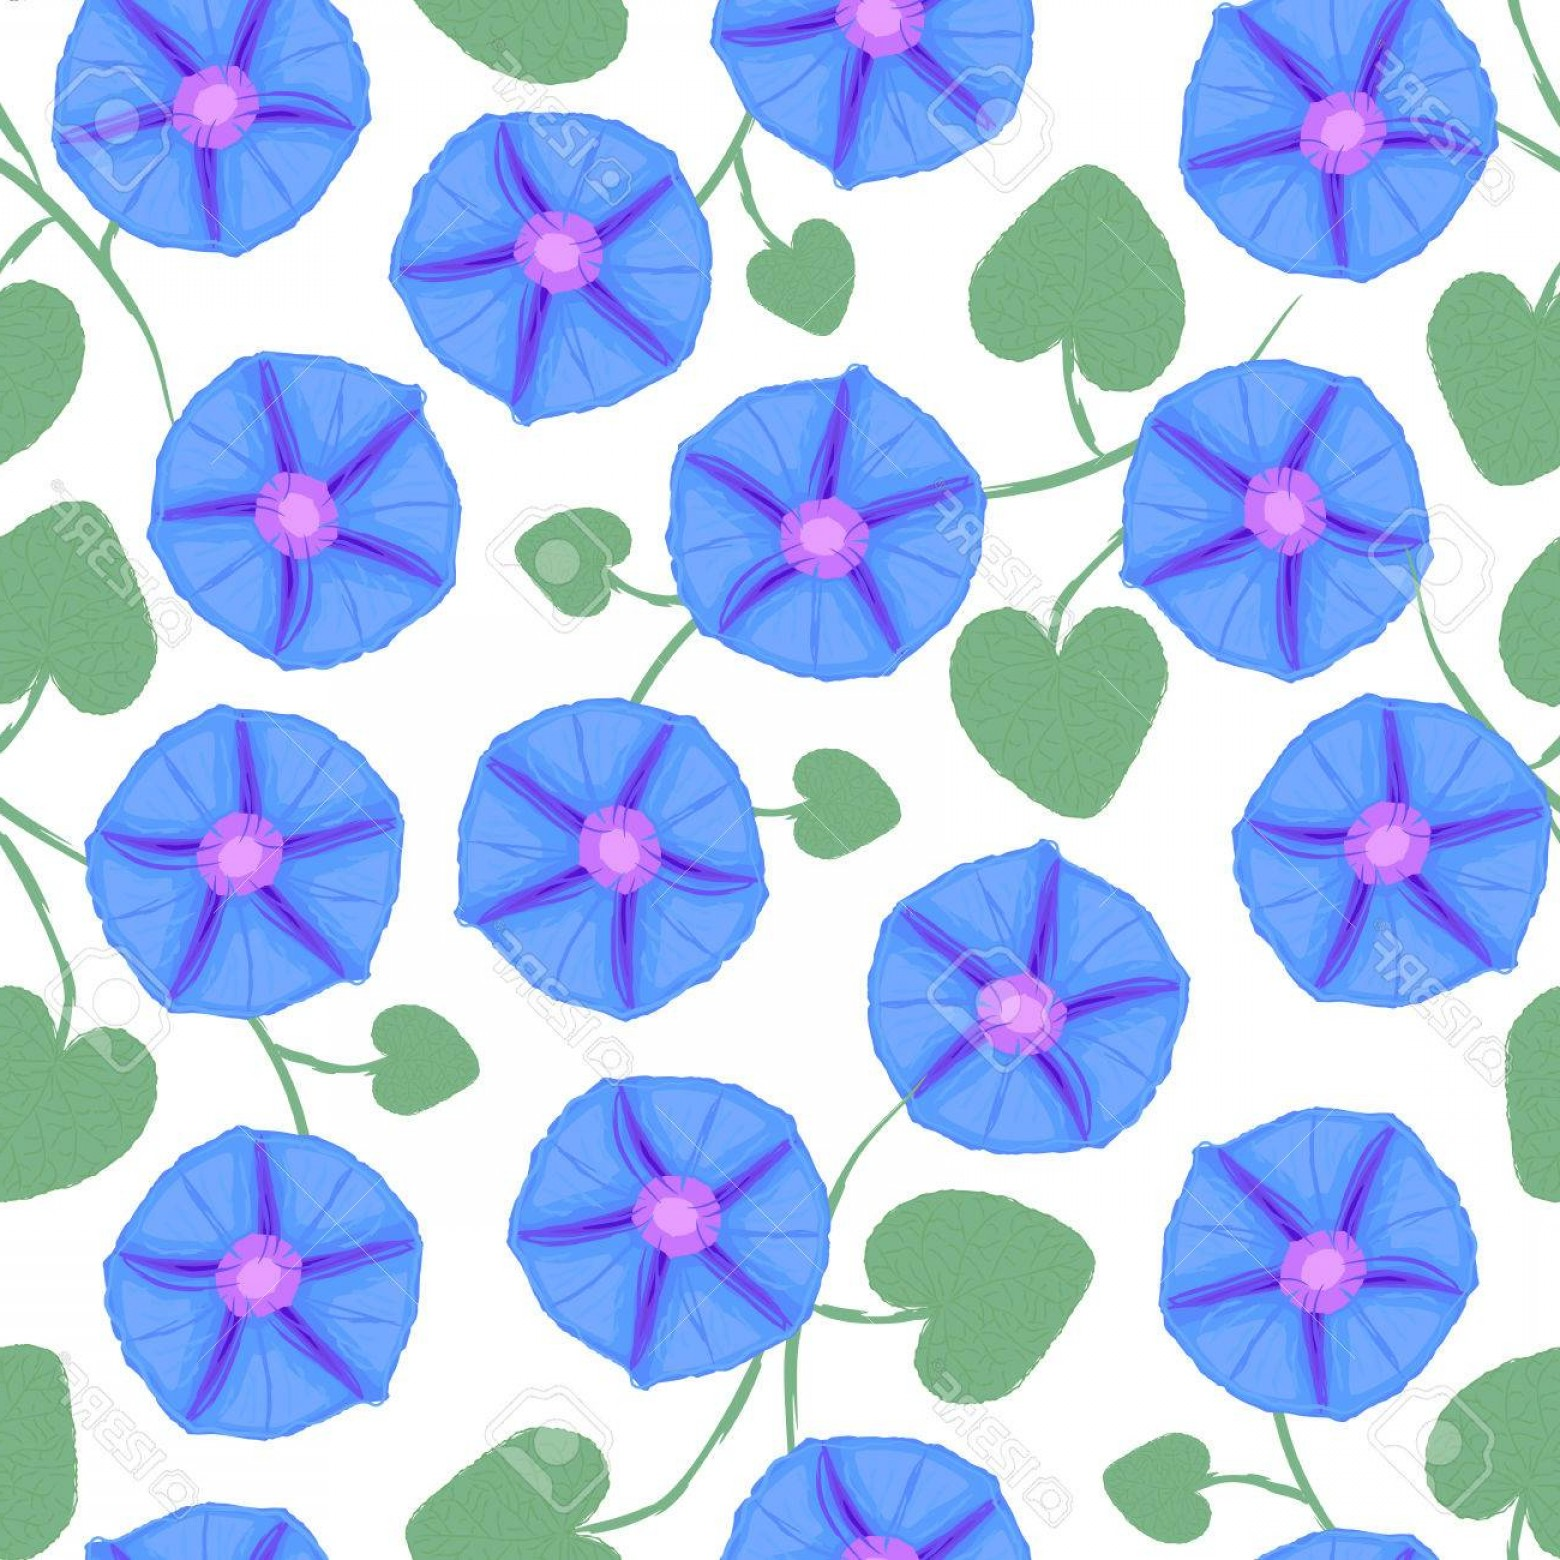 Morning Glory Transparent Vector: Photostock Vector Seamless With Flower Ipomoea Morning Glory Vector Illustration Without Transparency